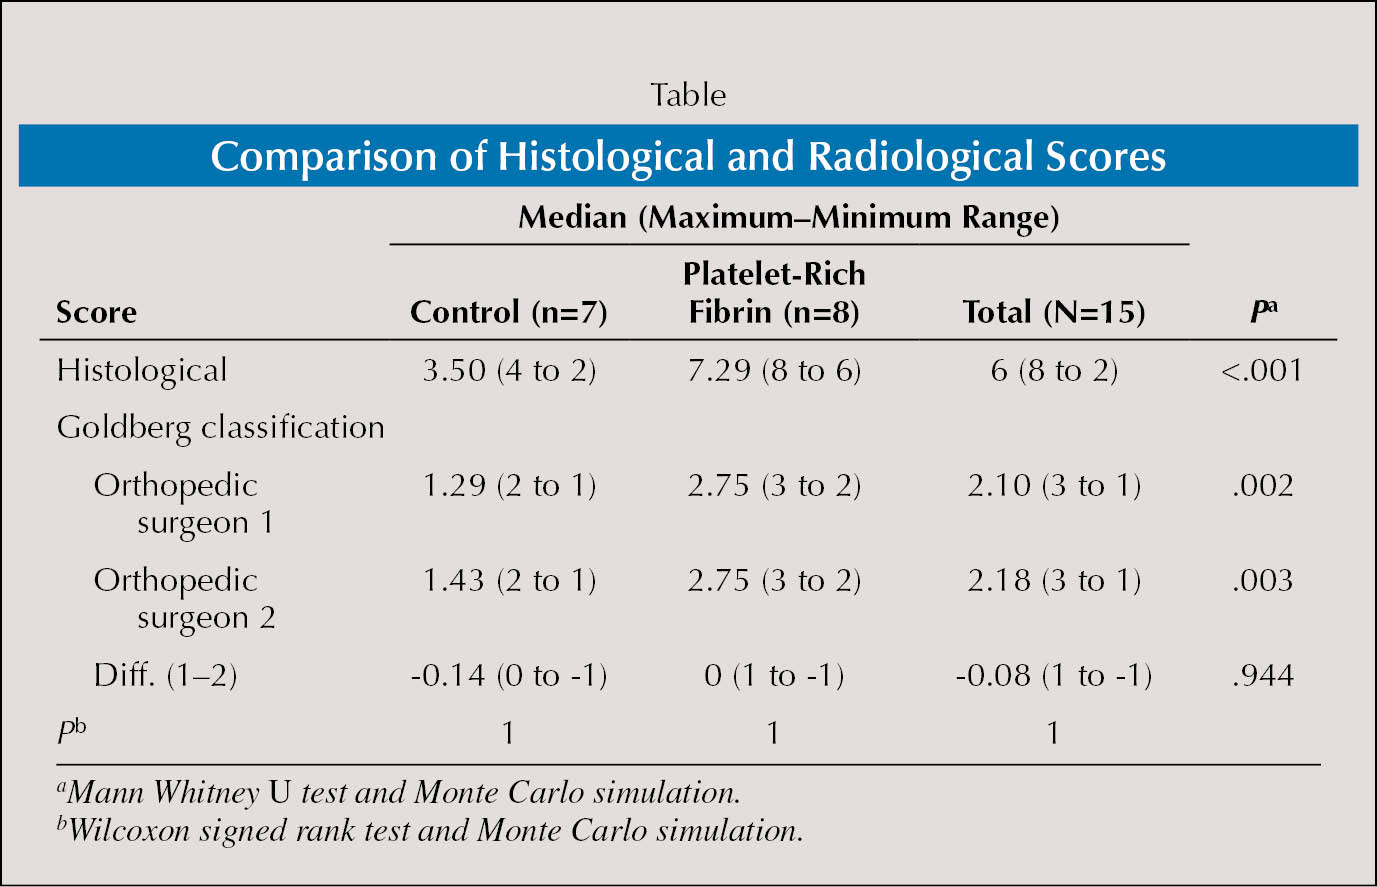 Comparison of Histological and Radiological Scores